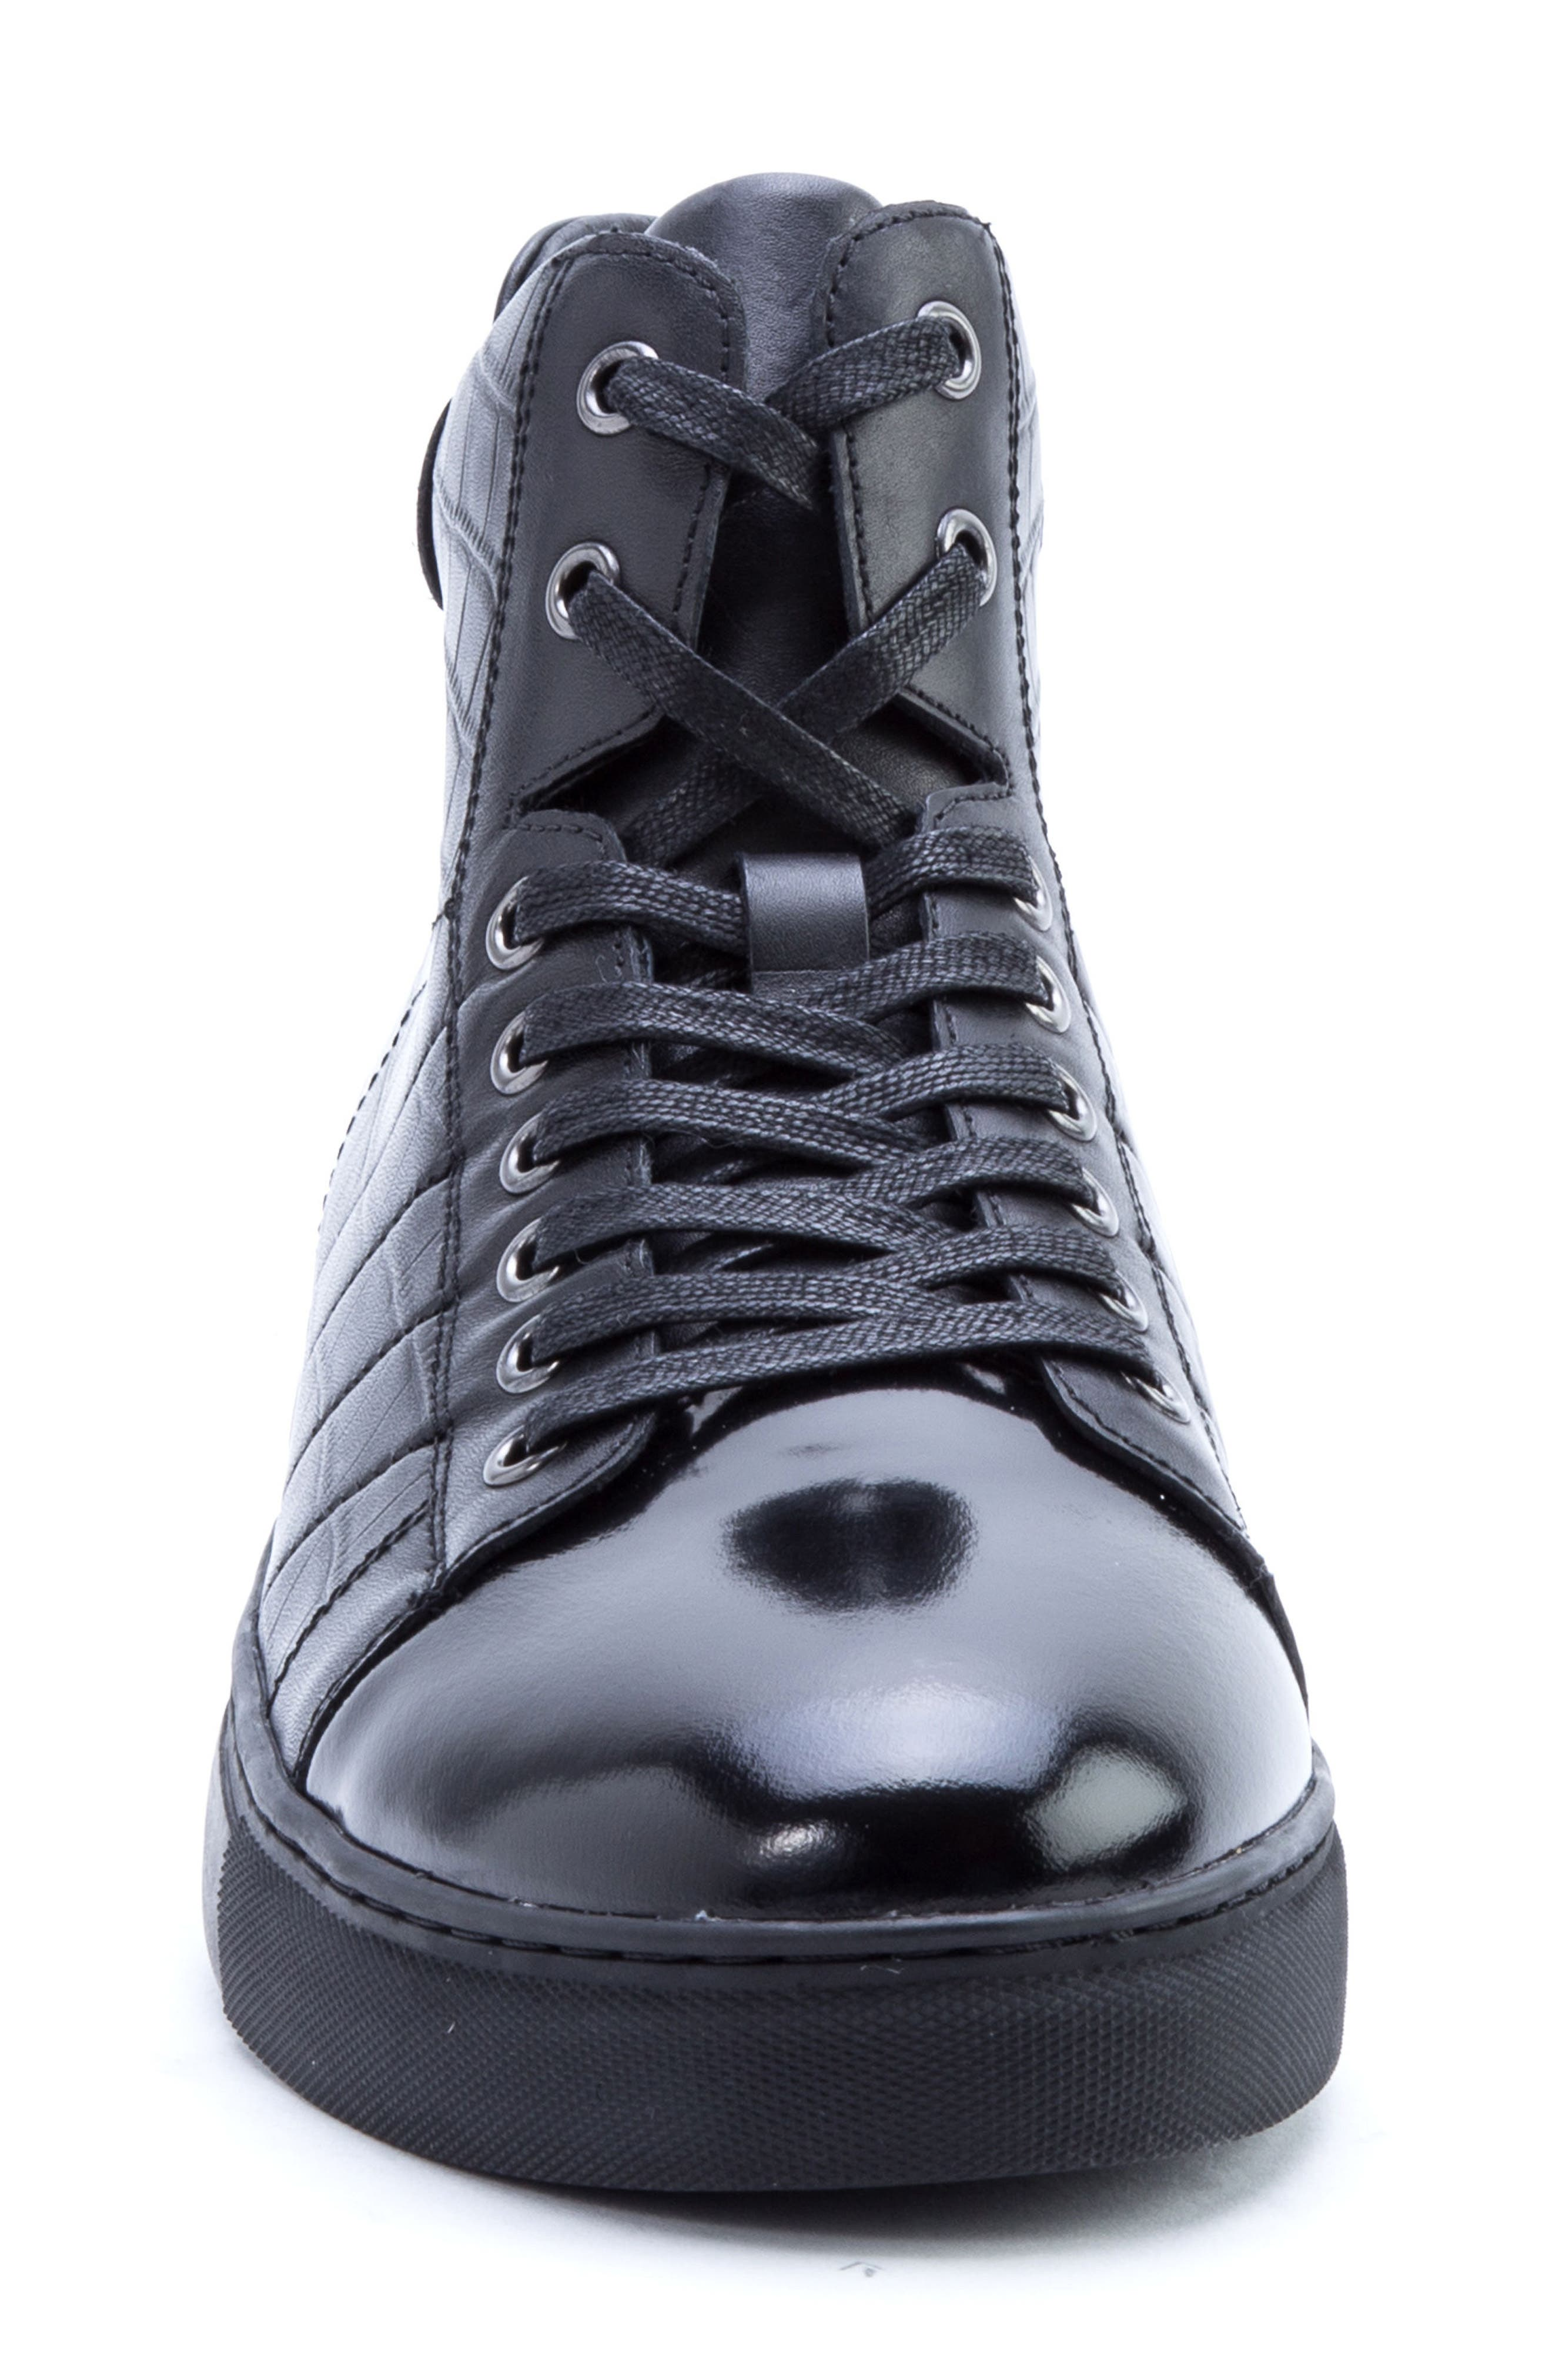 Clift High Top Sneaker,                             Alternate thumbnail 4, color,                             001